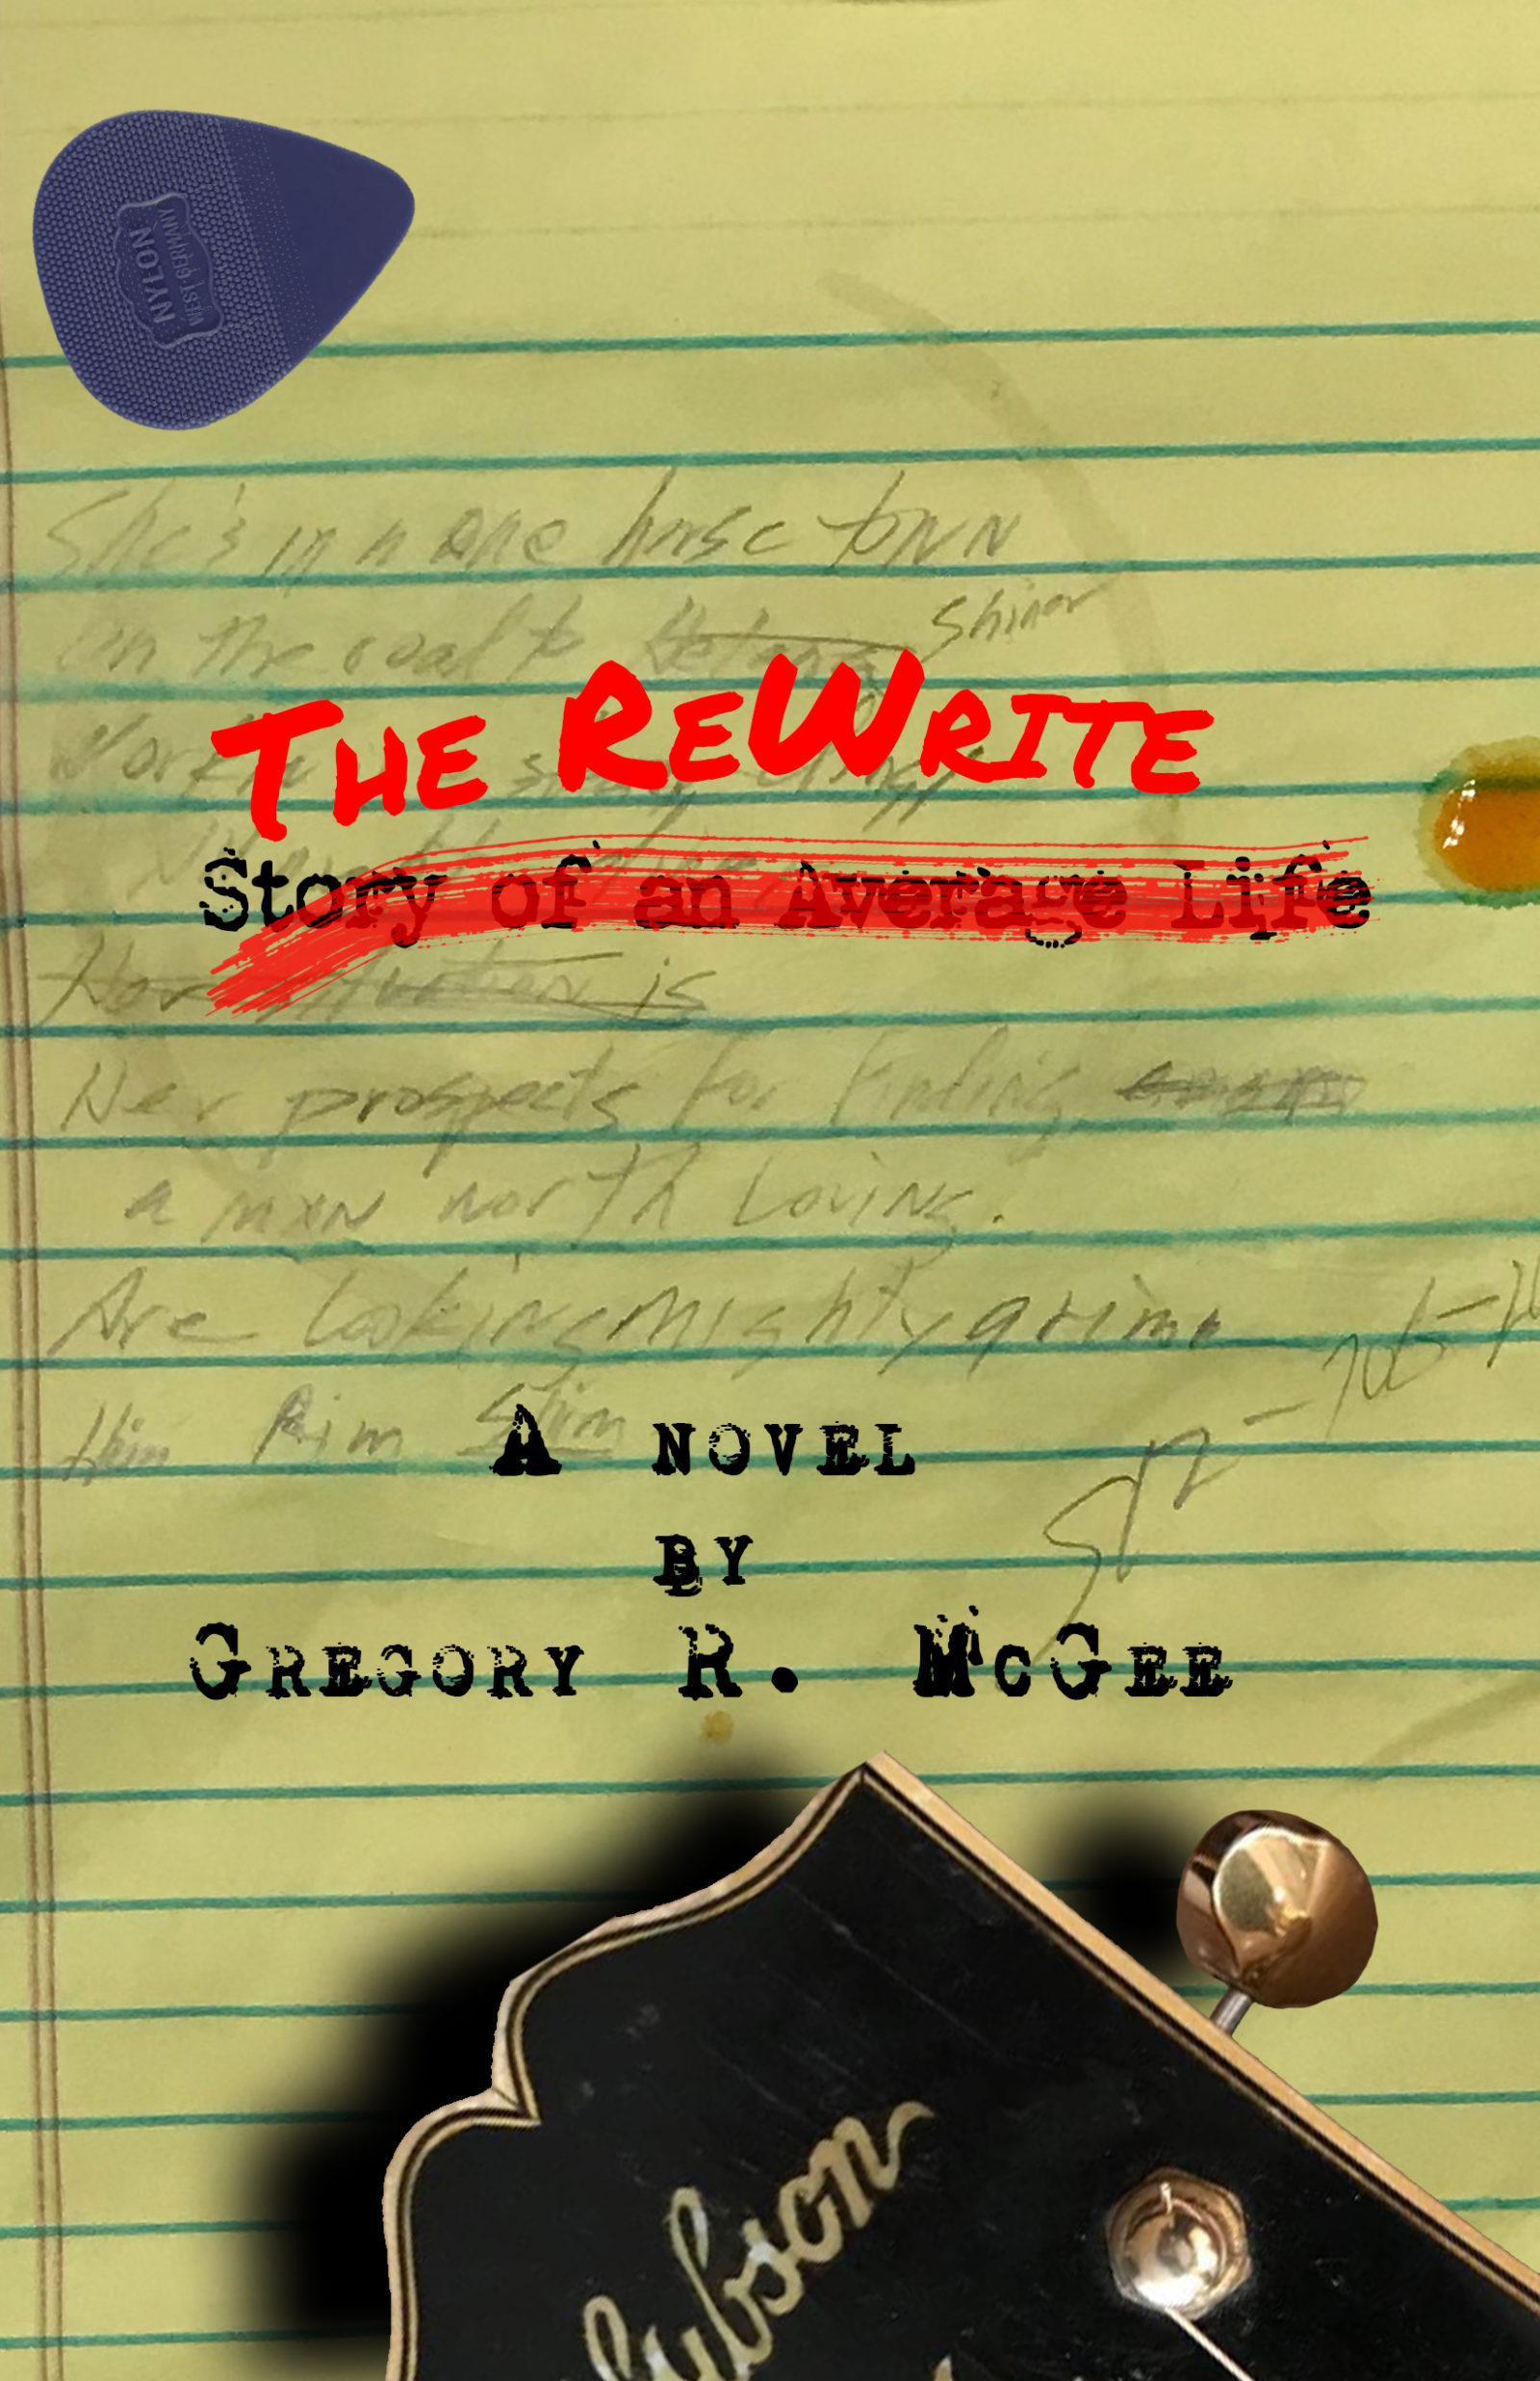 Cover Art for The ReWrite novel